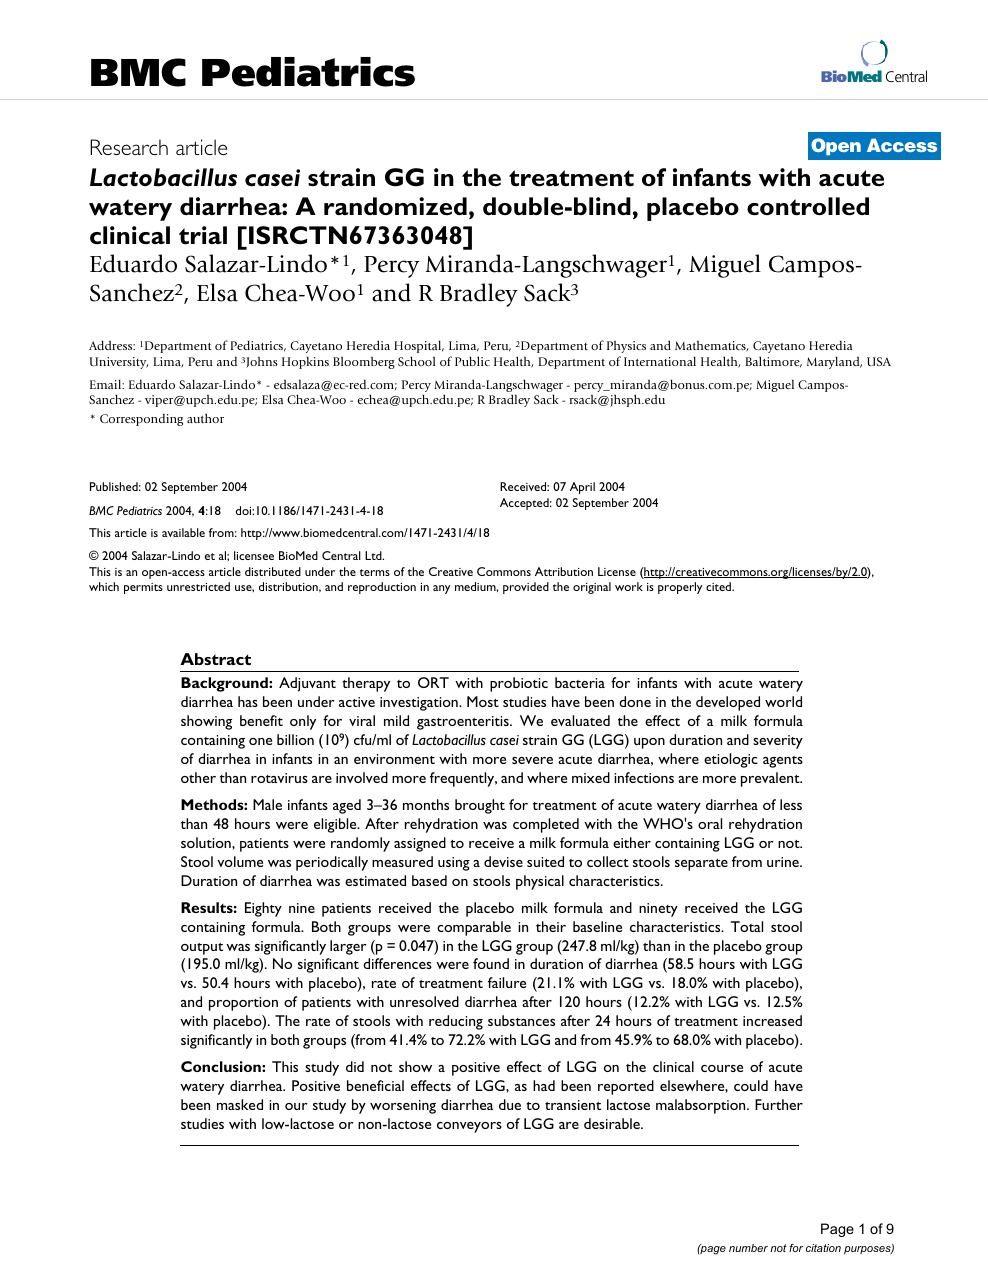 Lactobacillus caseistrain GG in the treatment of infants